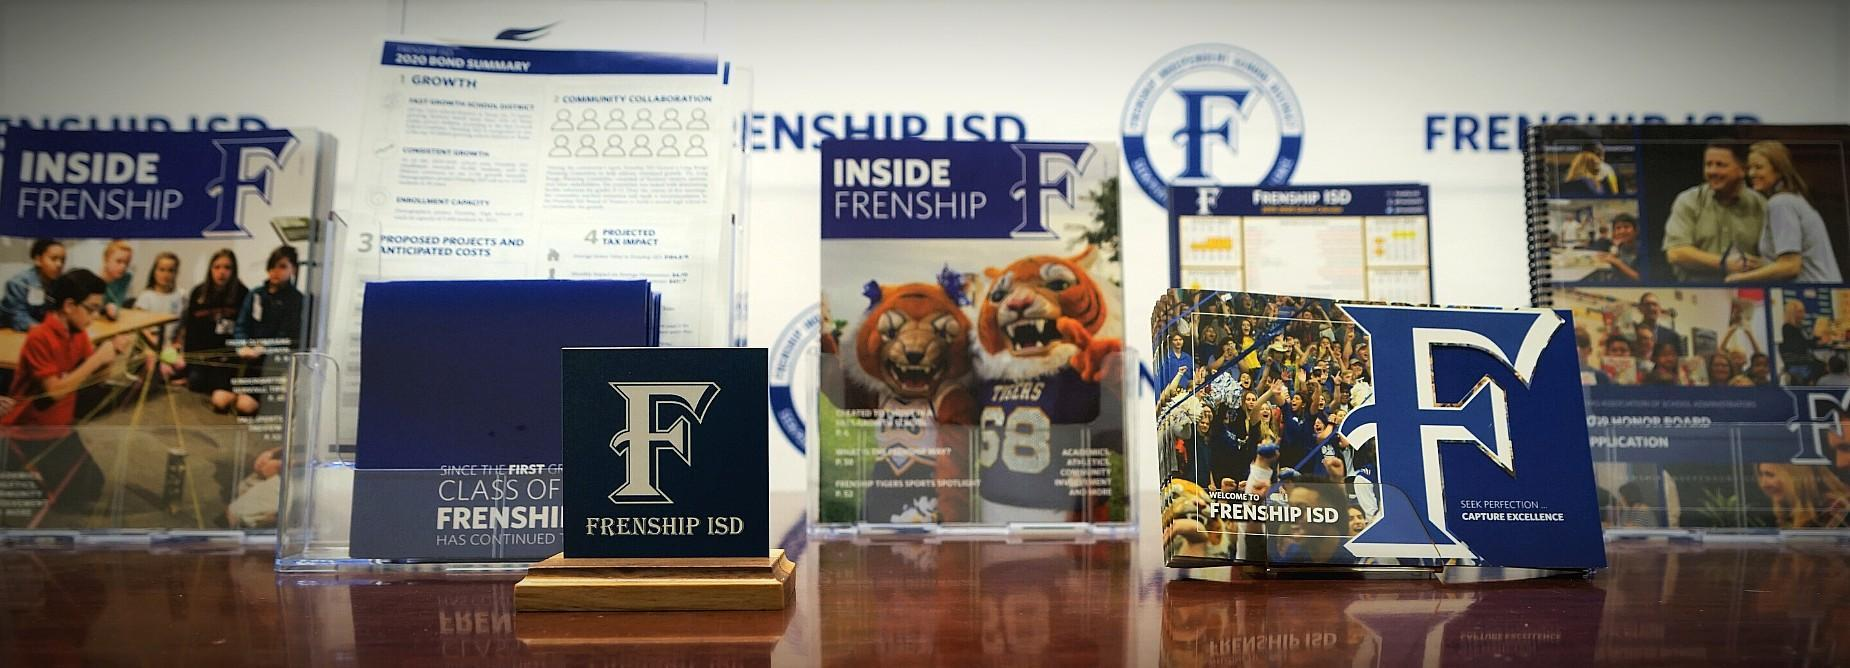 photo collage of frenship publications